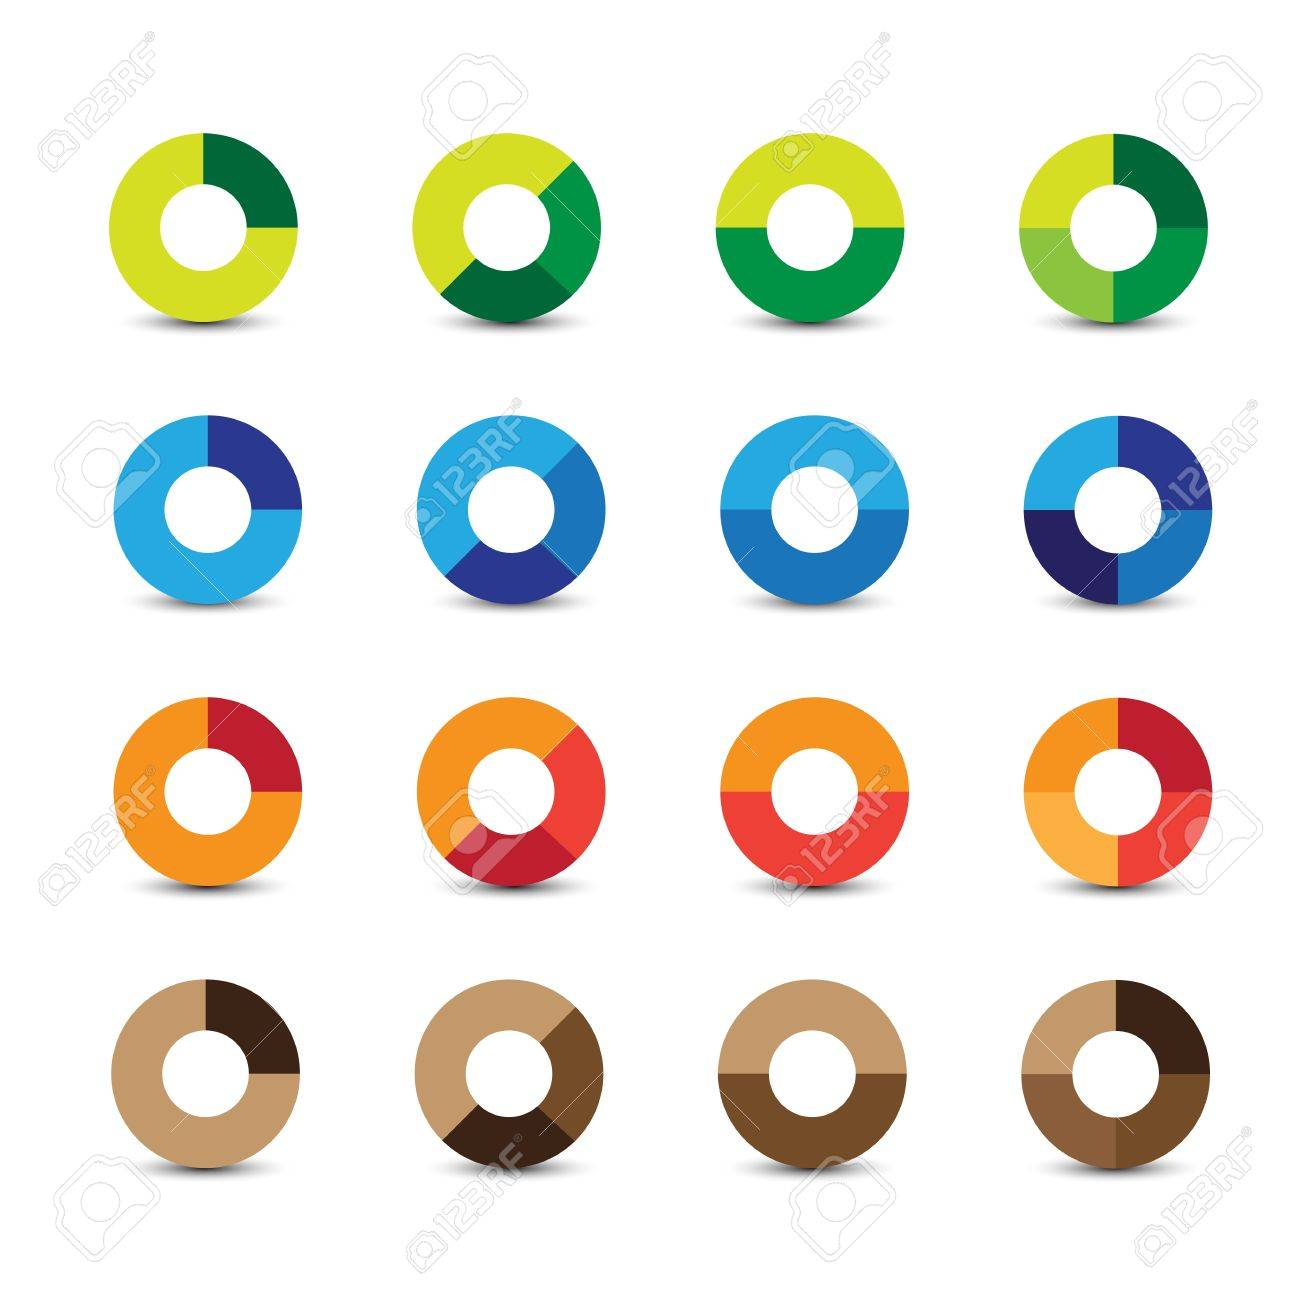 Abstract design elements circle Stock Vector - 18102423